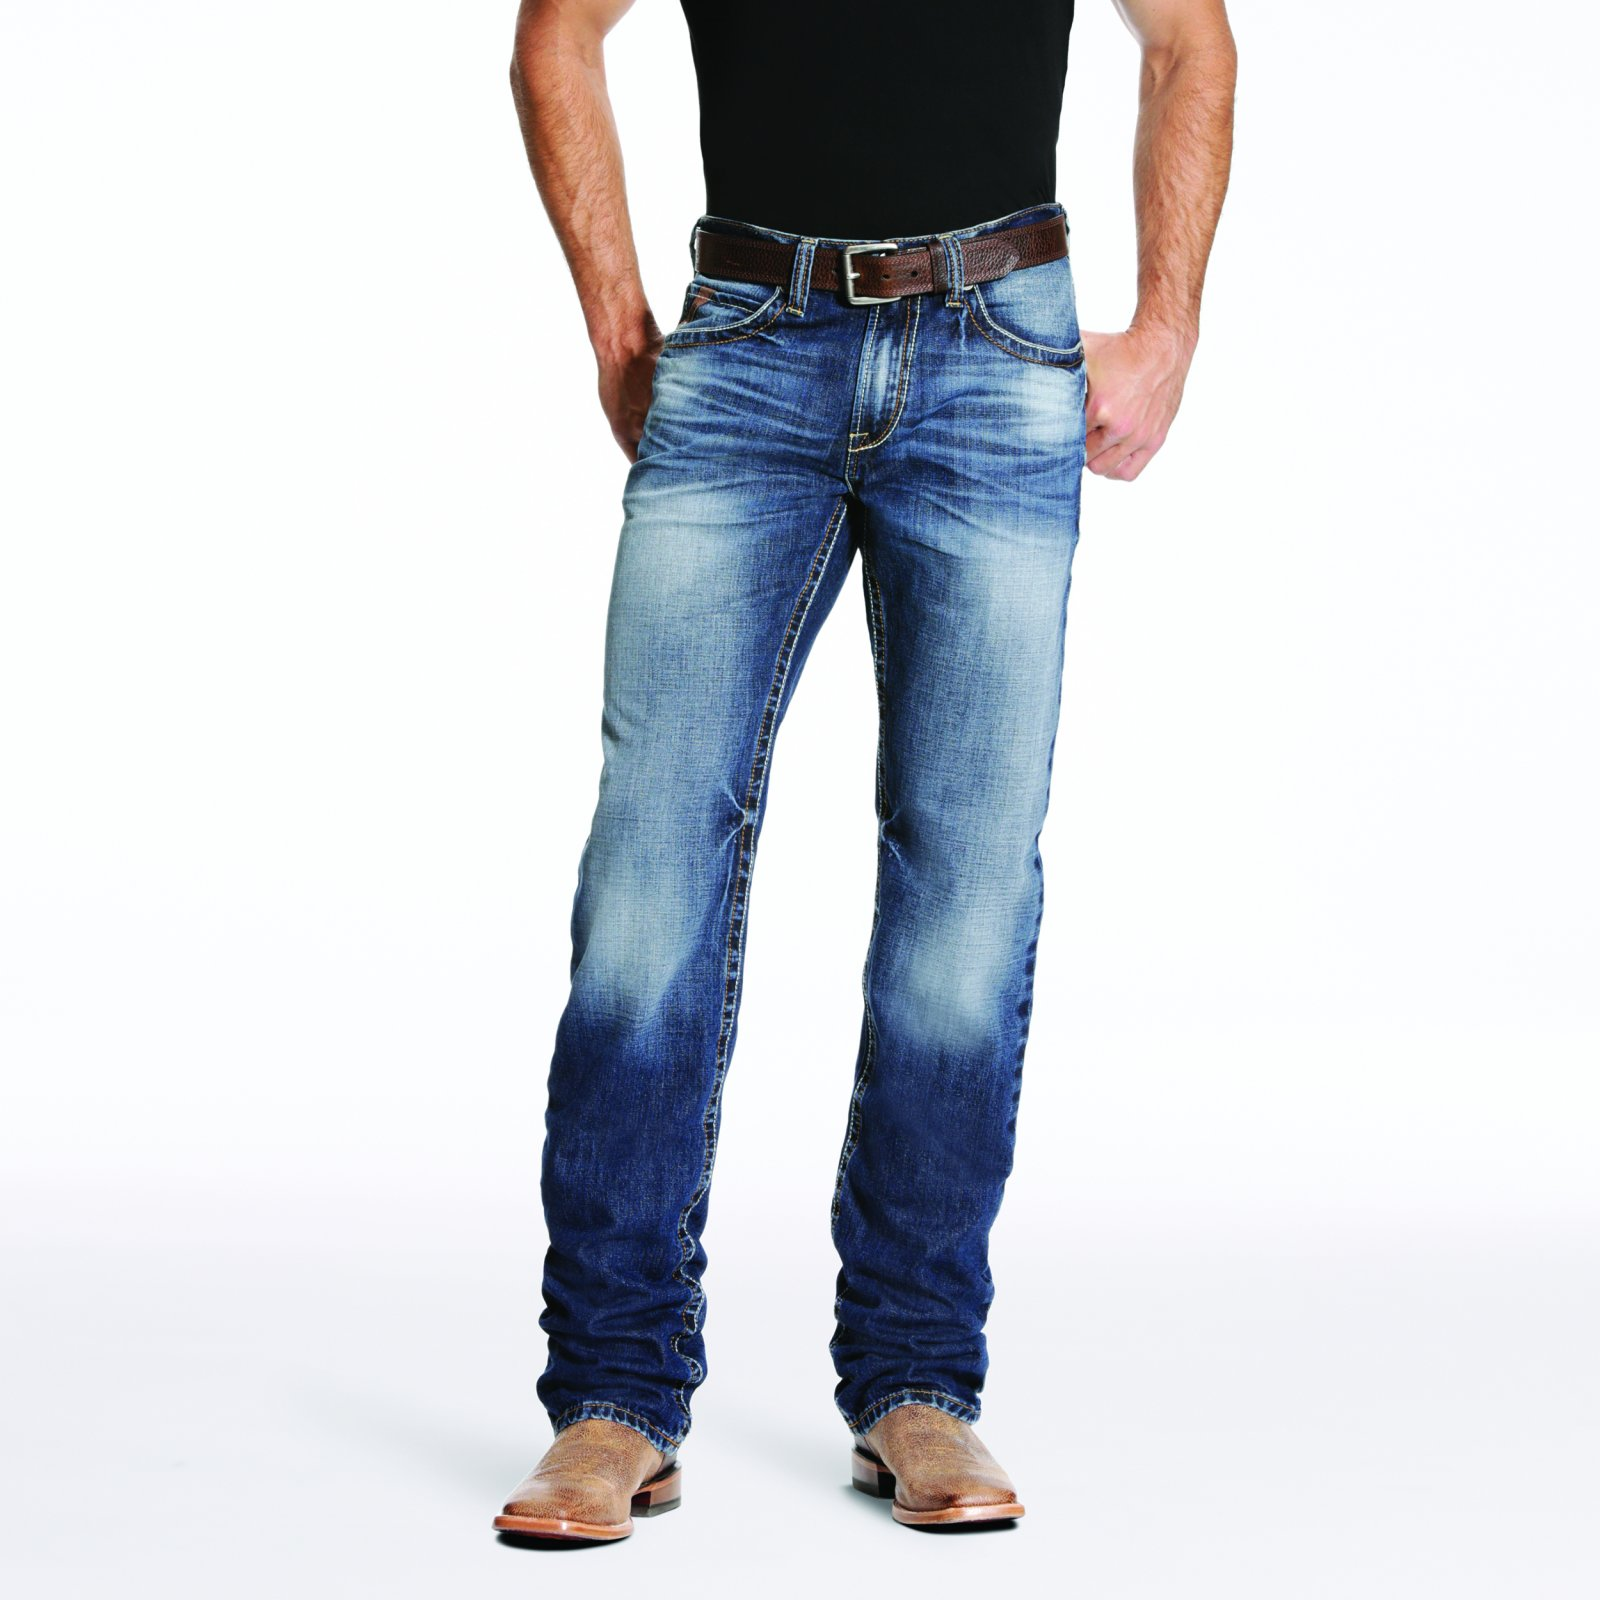 Men's M2 Elko Bayshore Jean from Ariat